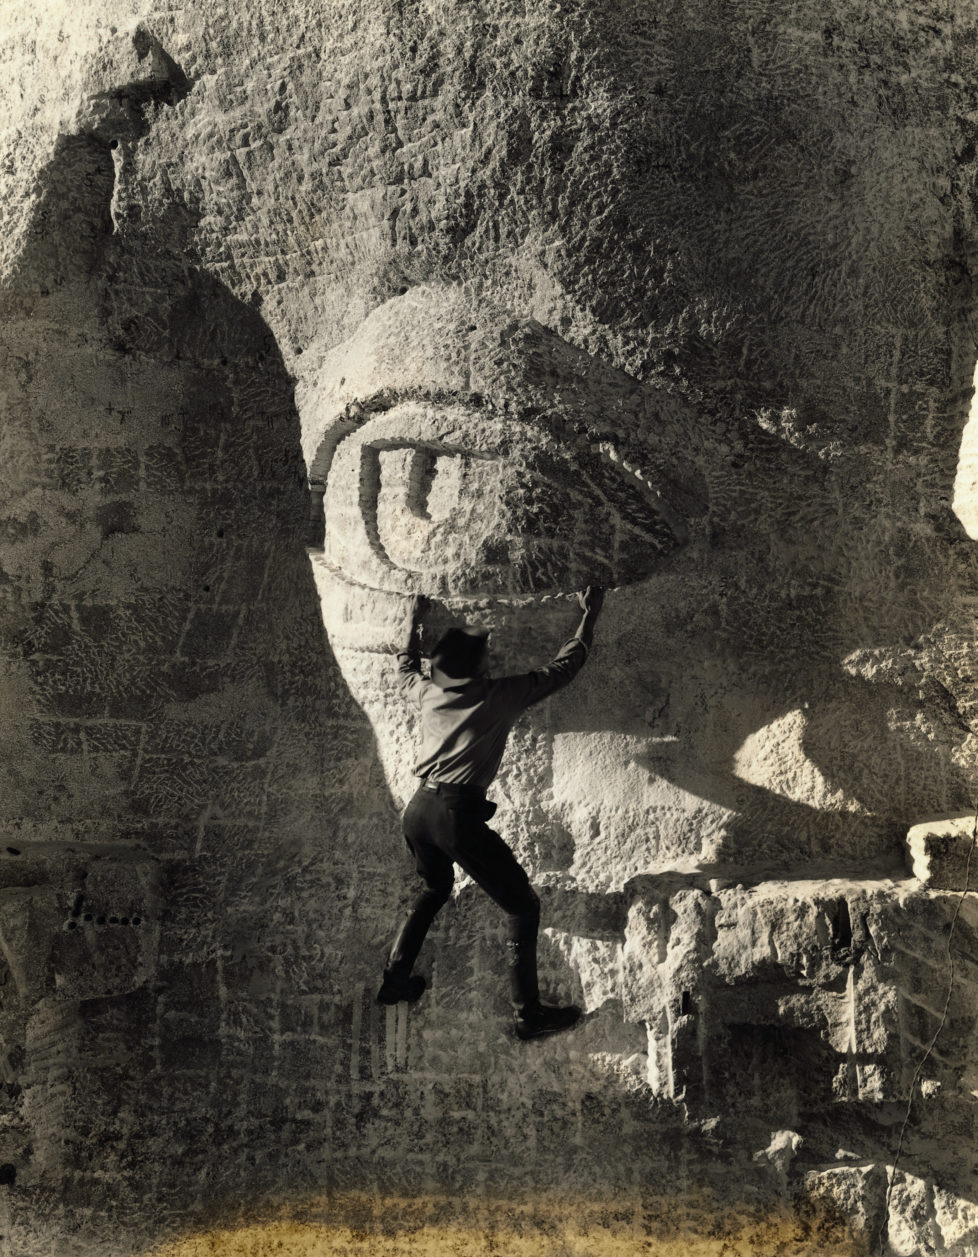 (Original Caption) Hanging on for dear life by the eye lid of the figure of Thomas Jefferson, one of the group on Mount Rushmore is shown. The project is headed by Gutzon Borglum. (Photo by George Rinhart/Corbis via Getty Images)